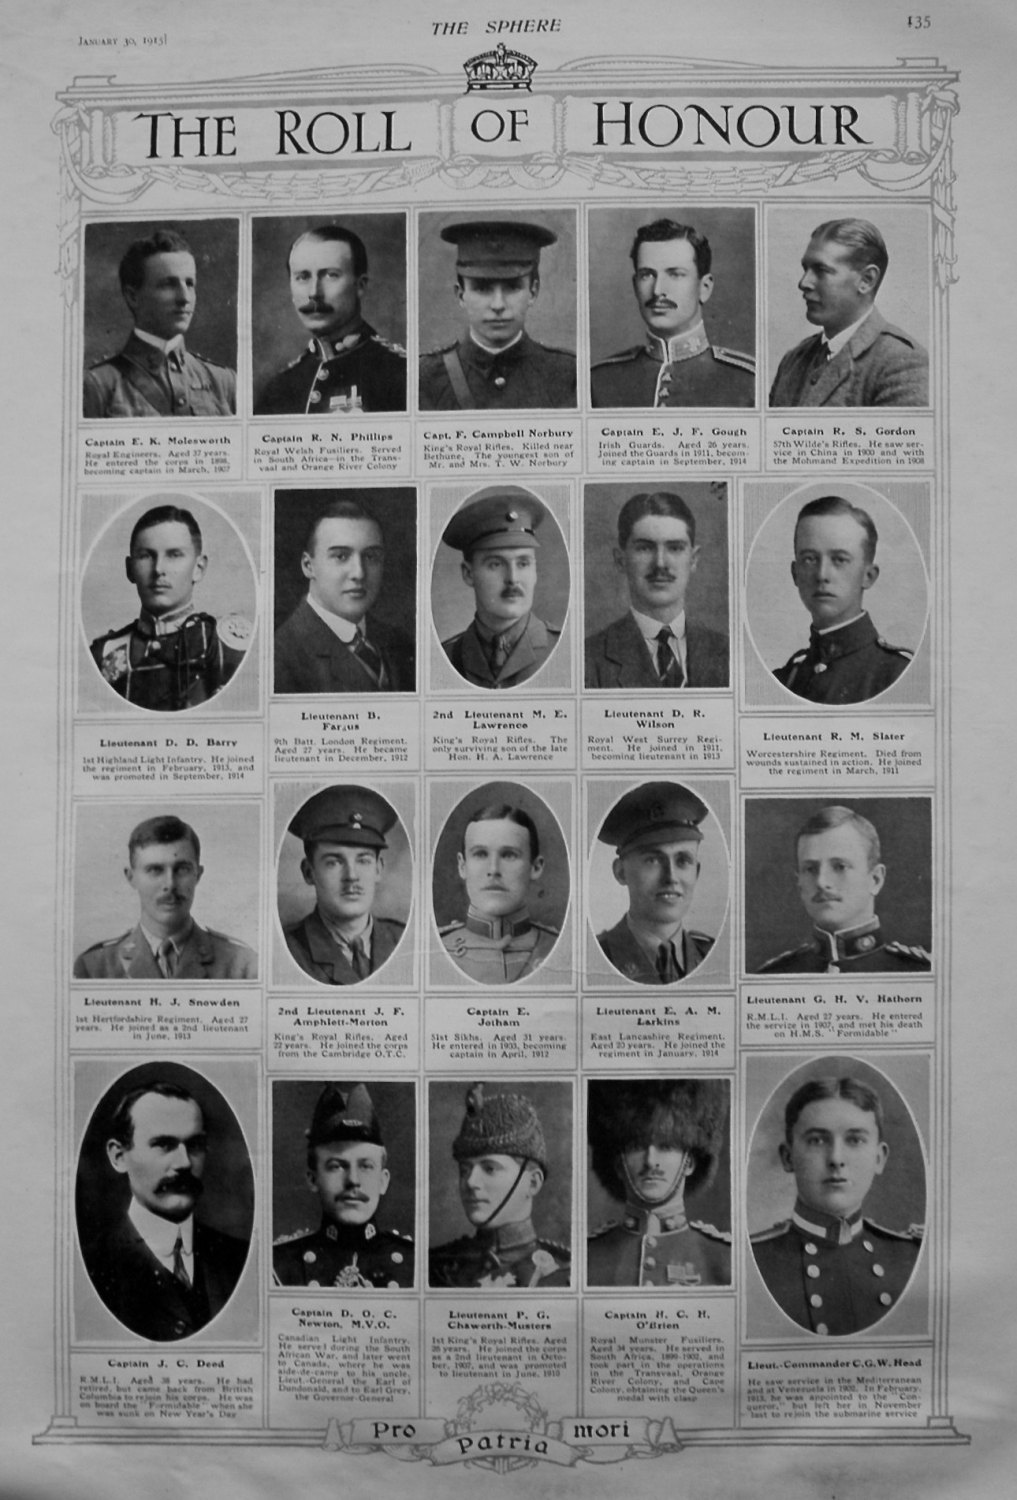 The Roll of Honour. January 30th, 1915.